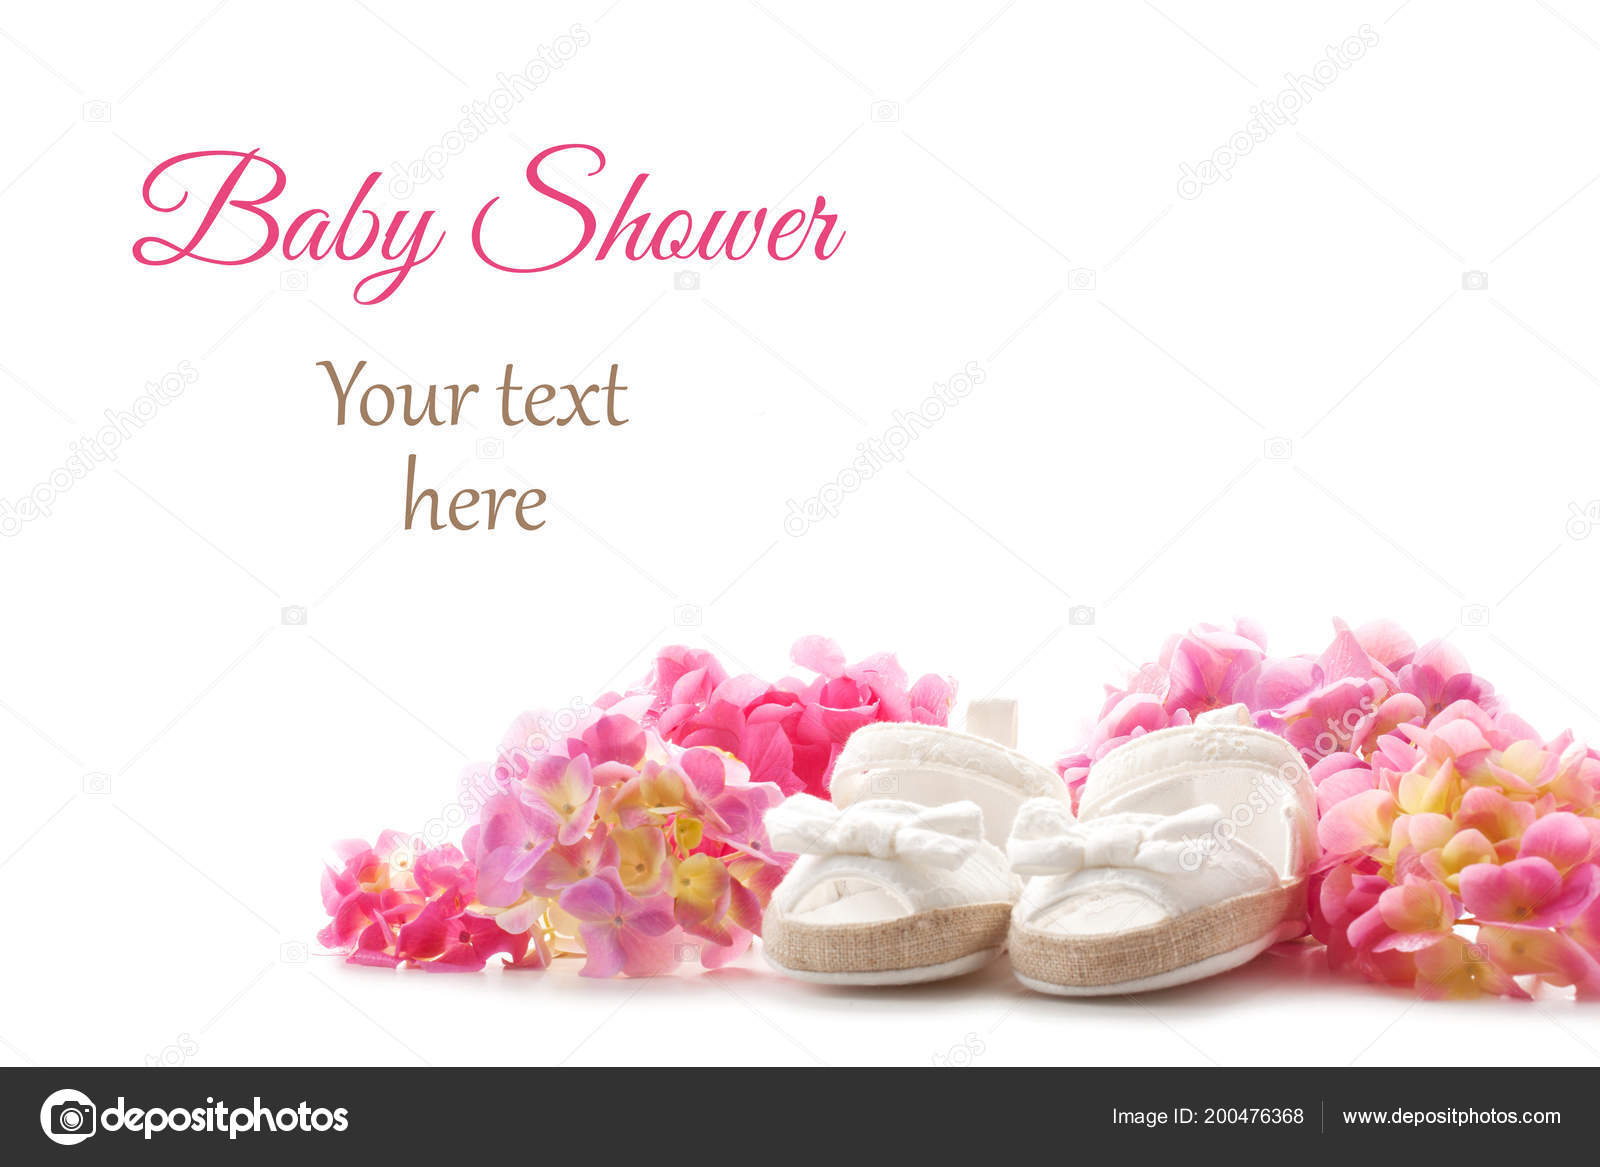 Cute newborn baby girl shoes hortensia flowers white background baby cute newborn baby girl shoes with hortensia flowers over the white background baby shower birthday invitation or greeting card mockup foto de netrun78 stopboris Image collections